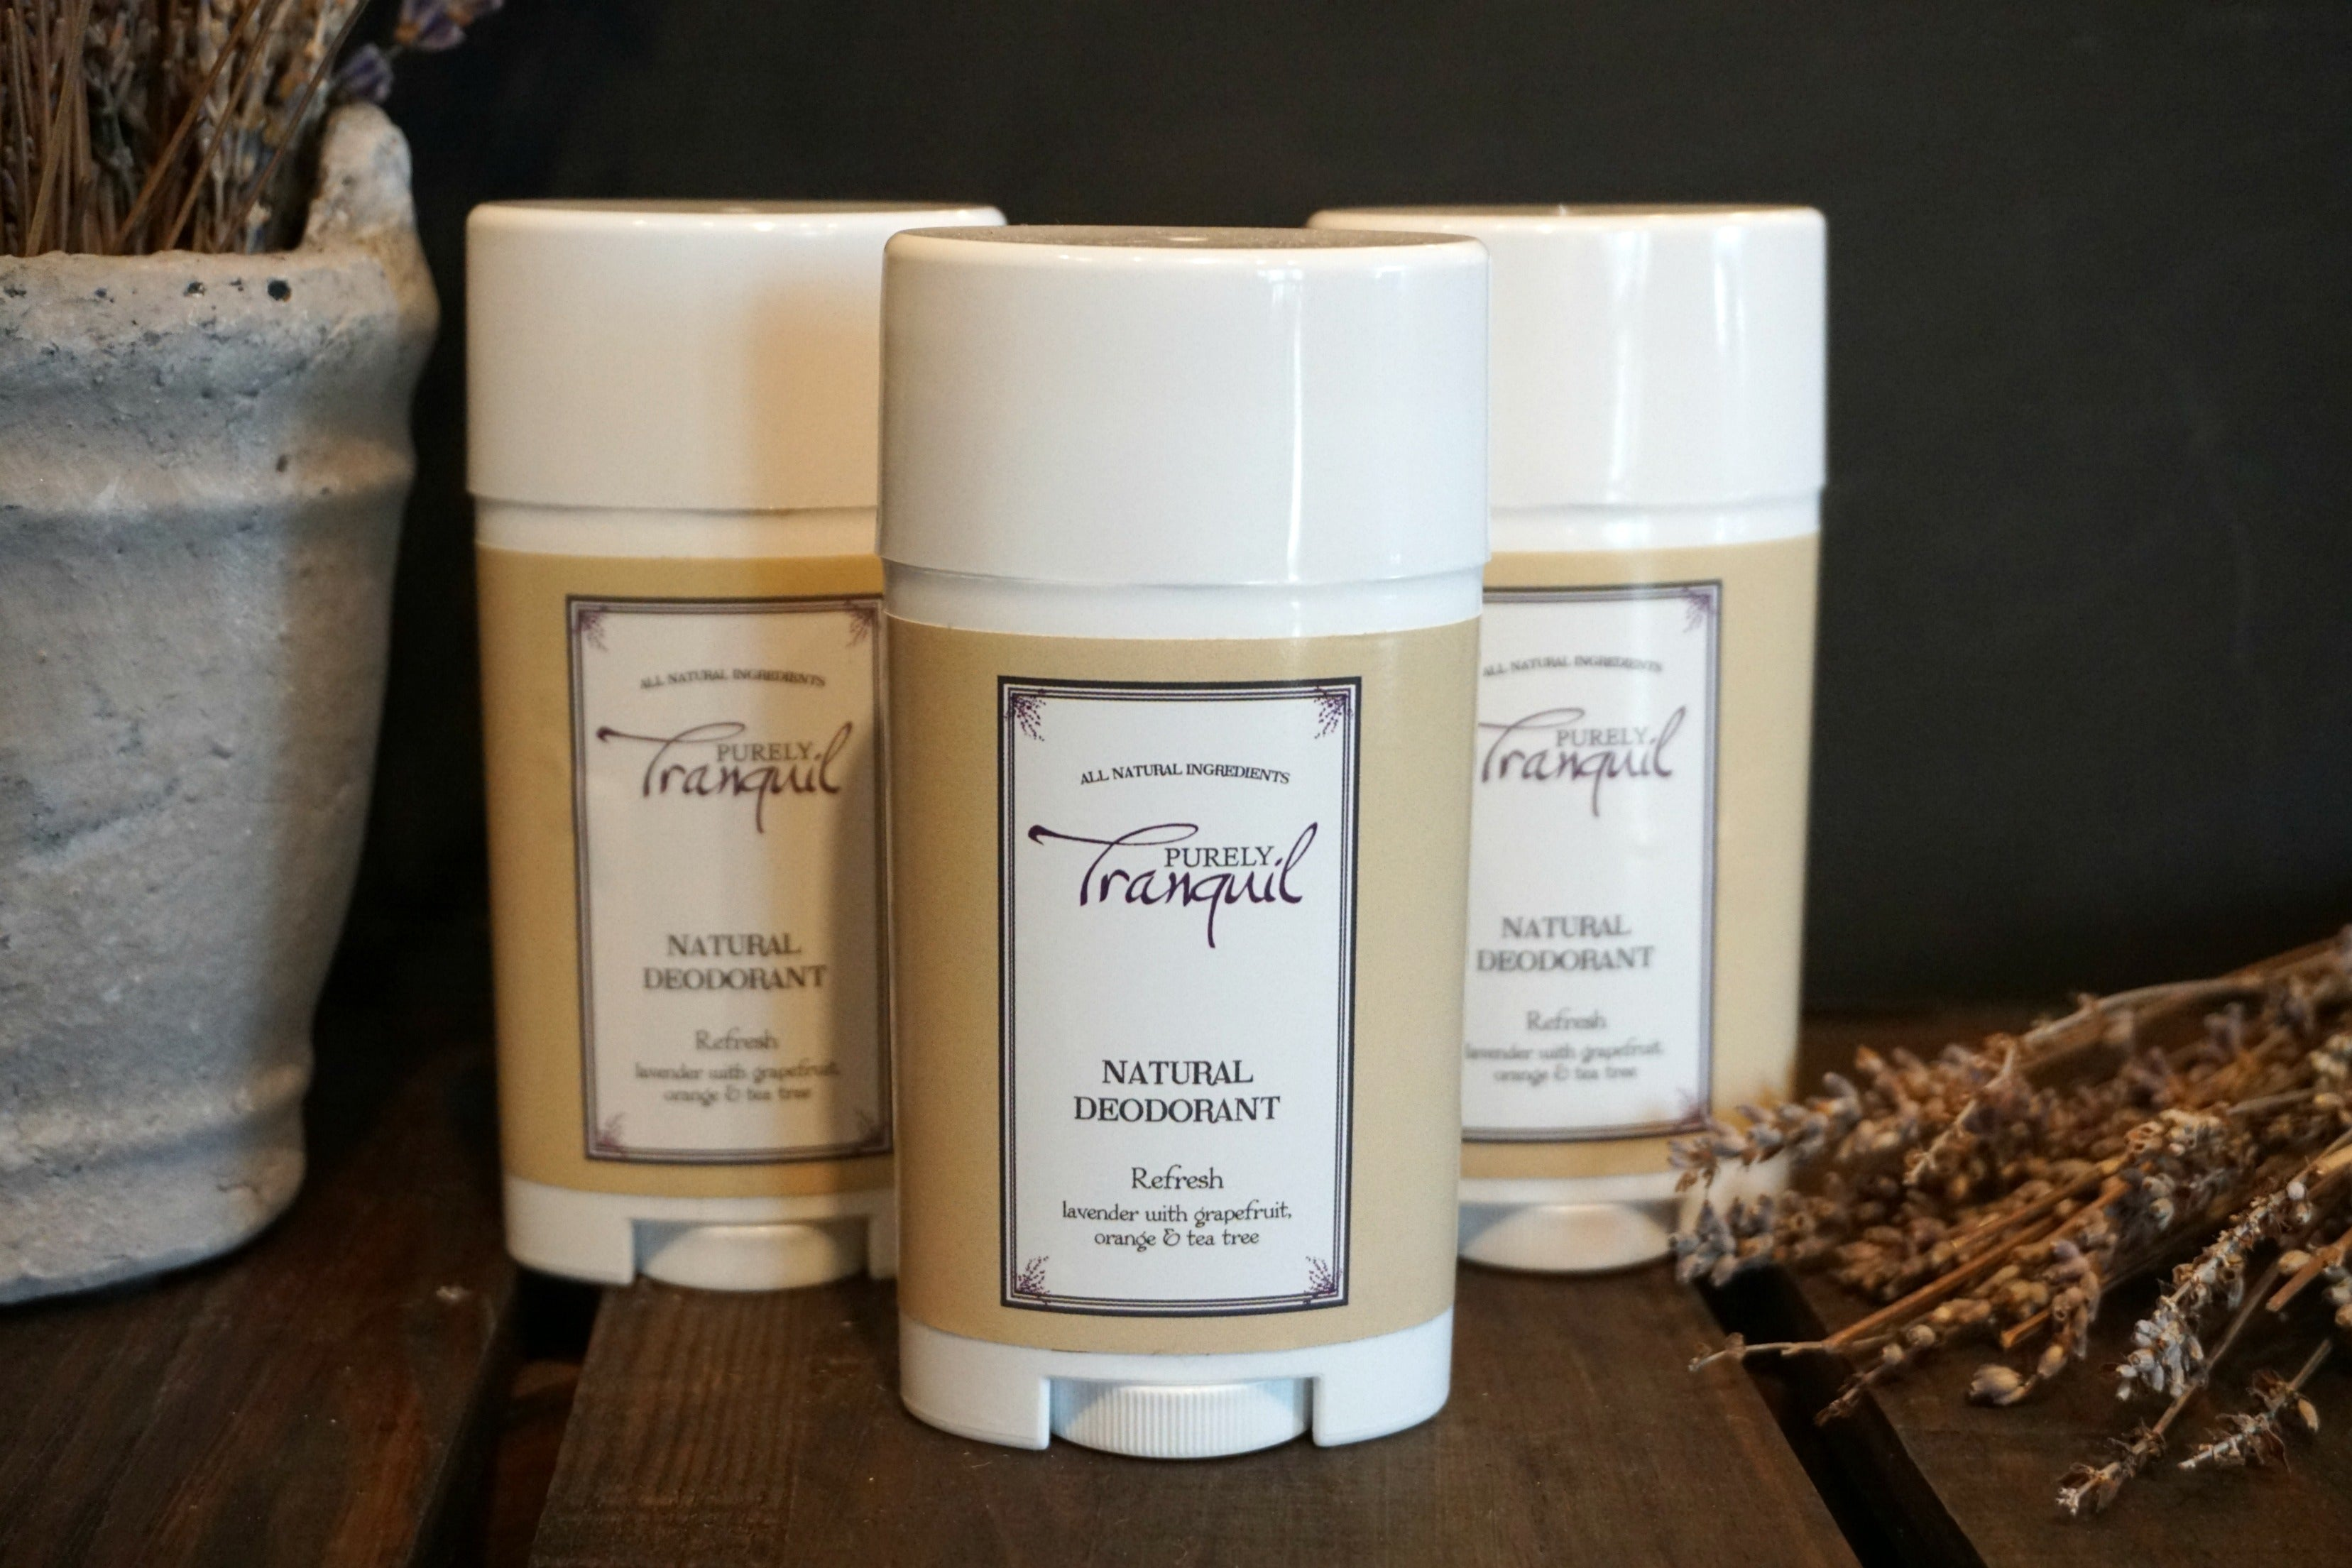 Purely Tranquil Natural Deodorant